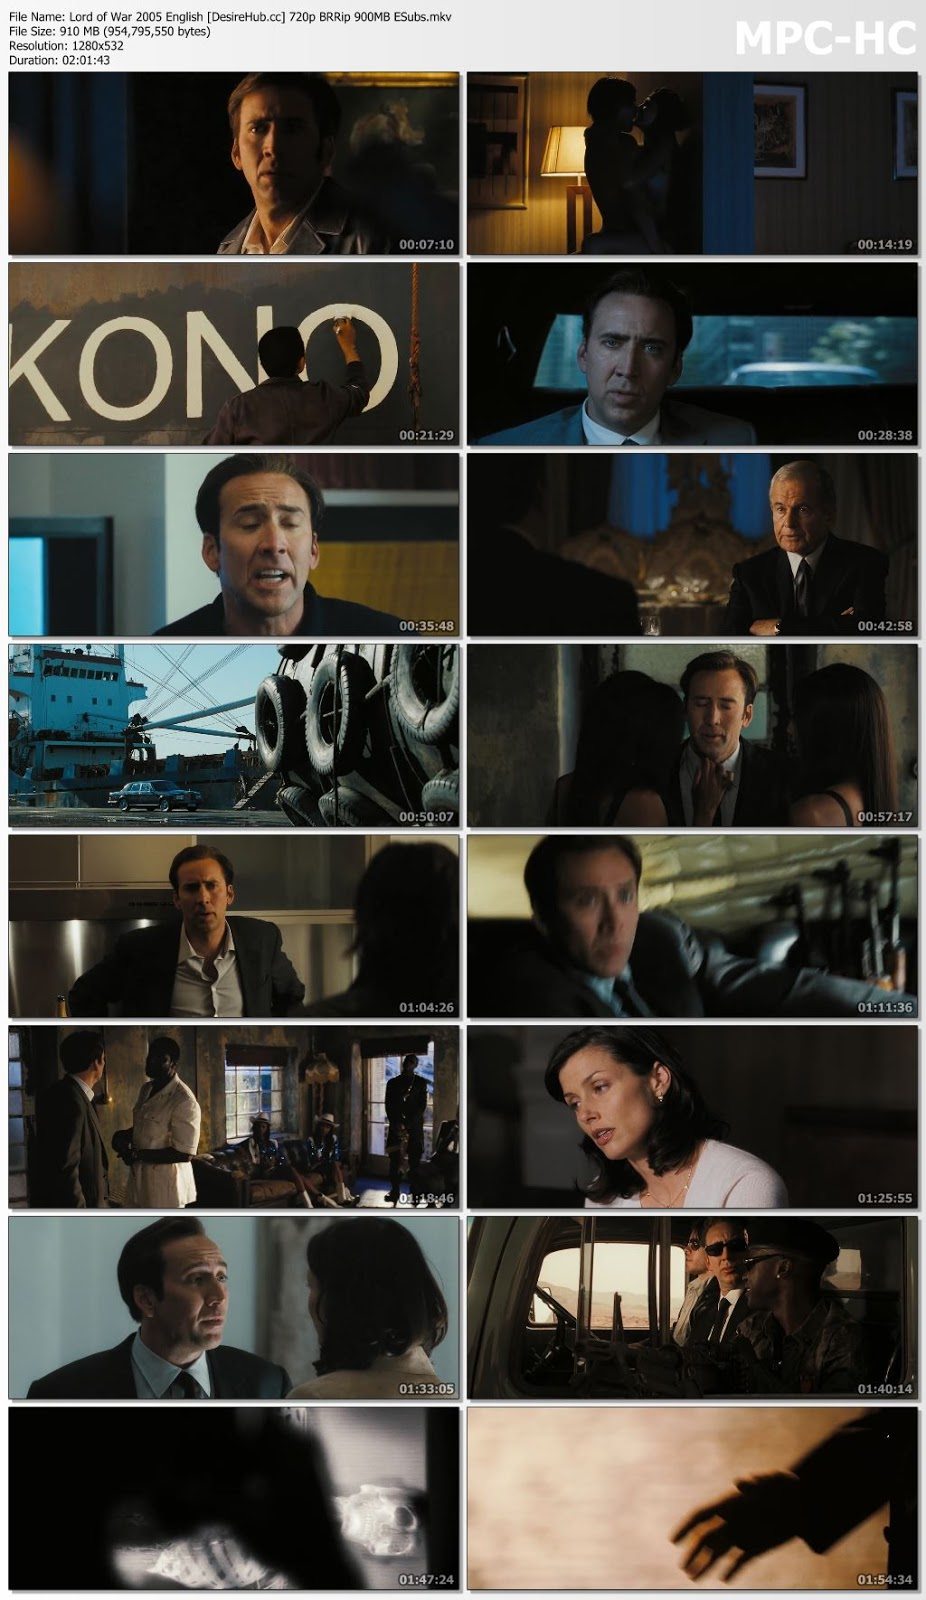 Lord of War 2005 English 480p BRRip ESubs 350MB Desirehub